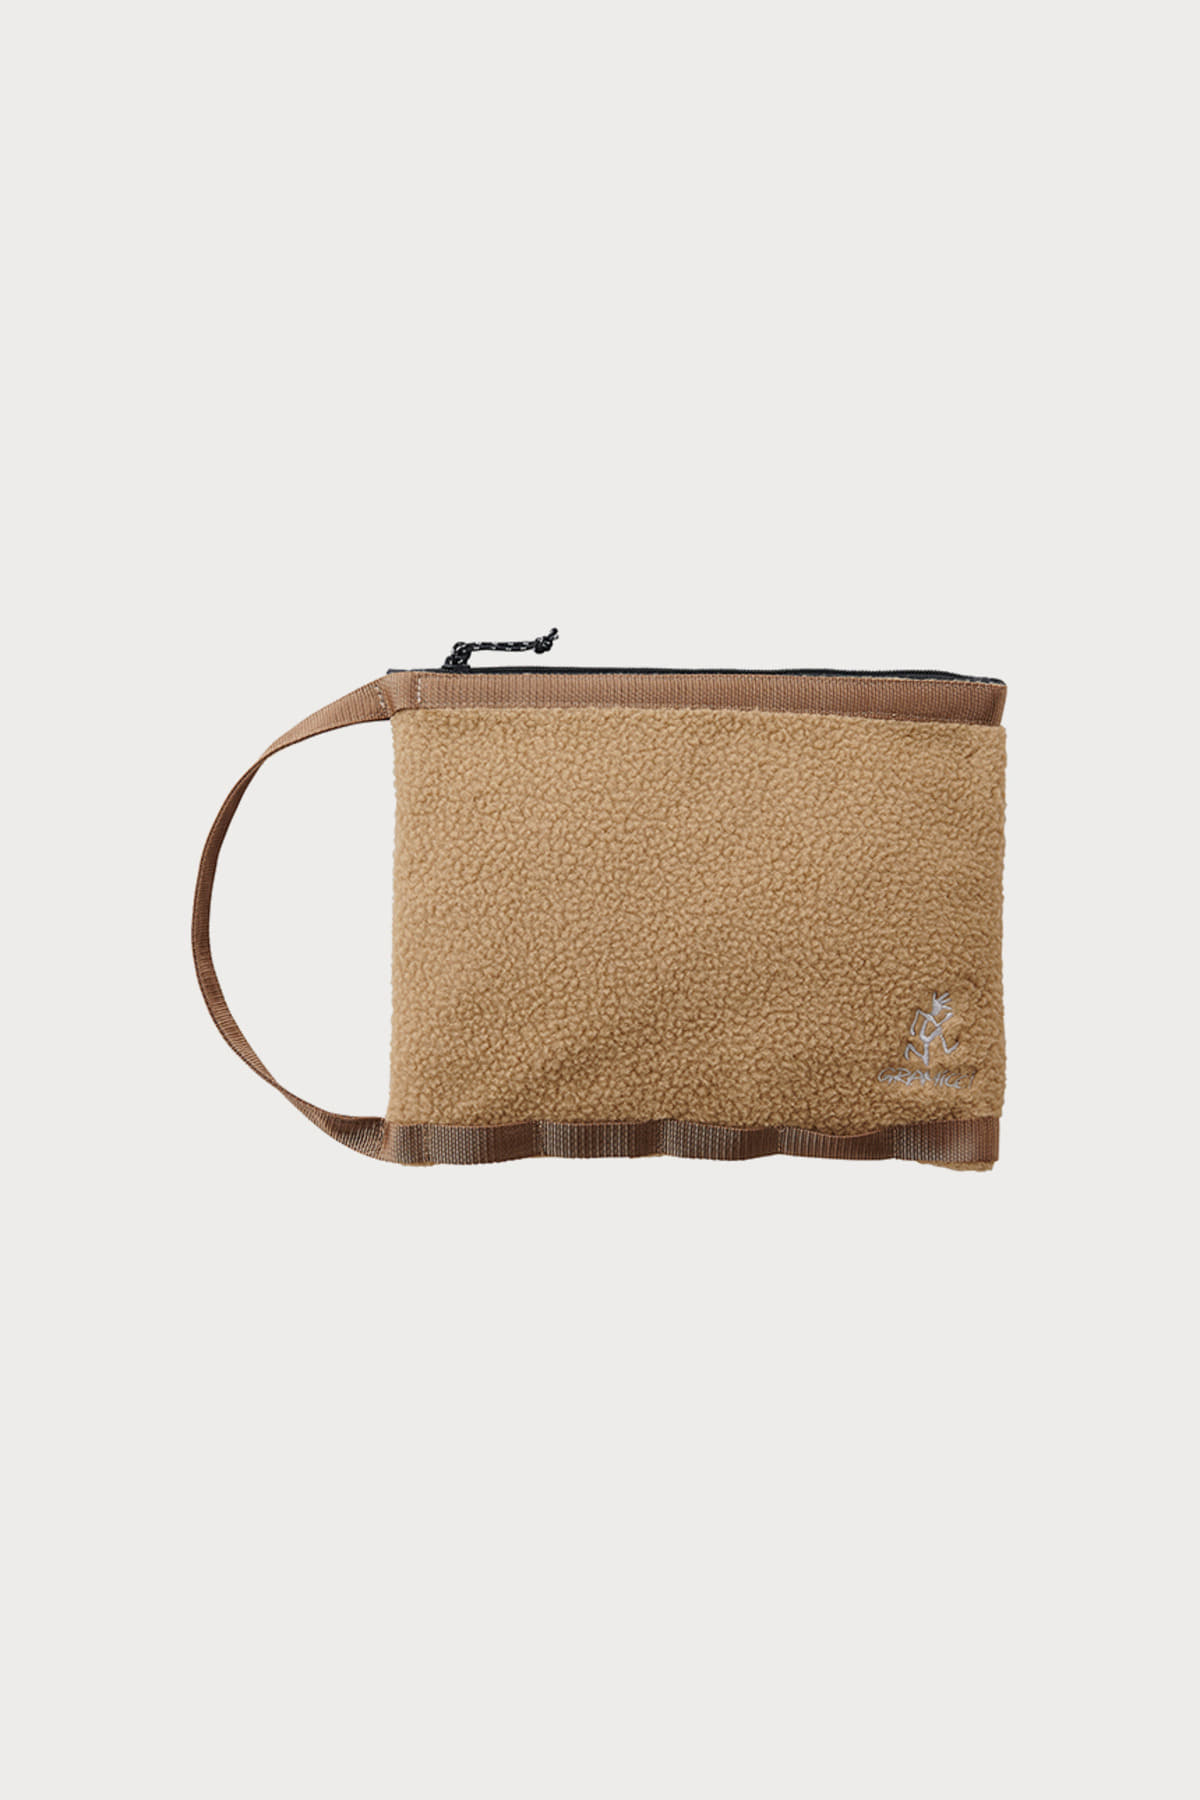 BOA FLEECE HANDLE POUCH BEIGE